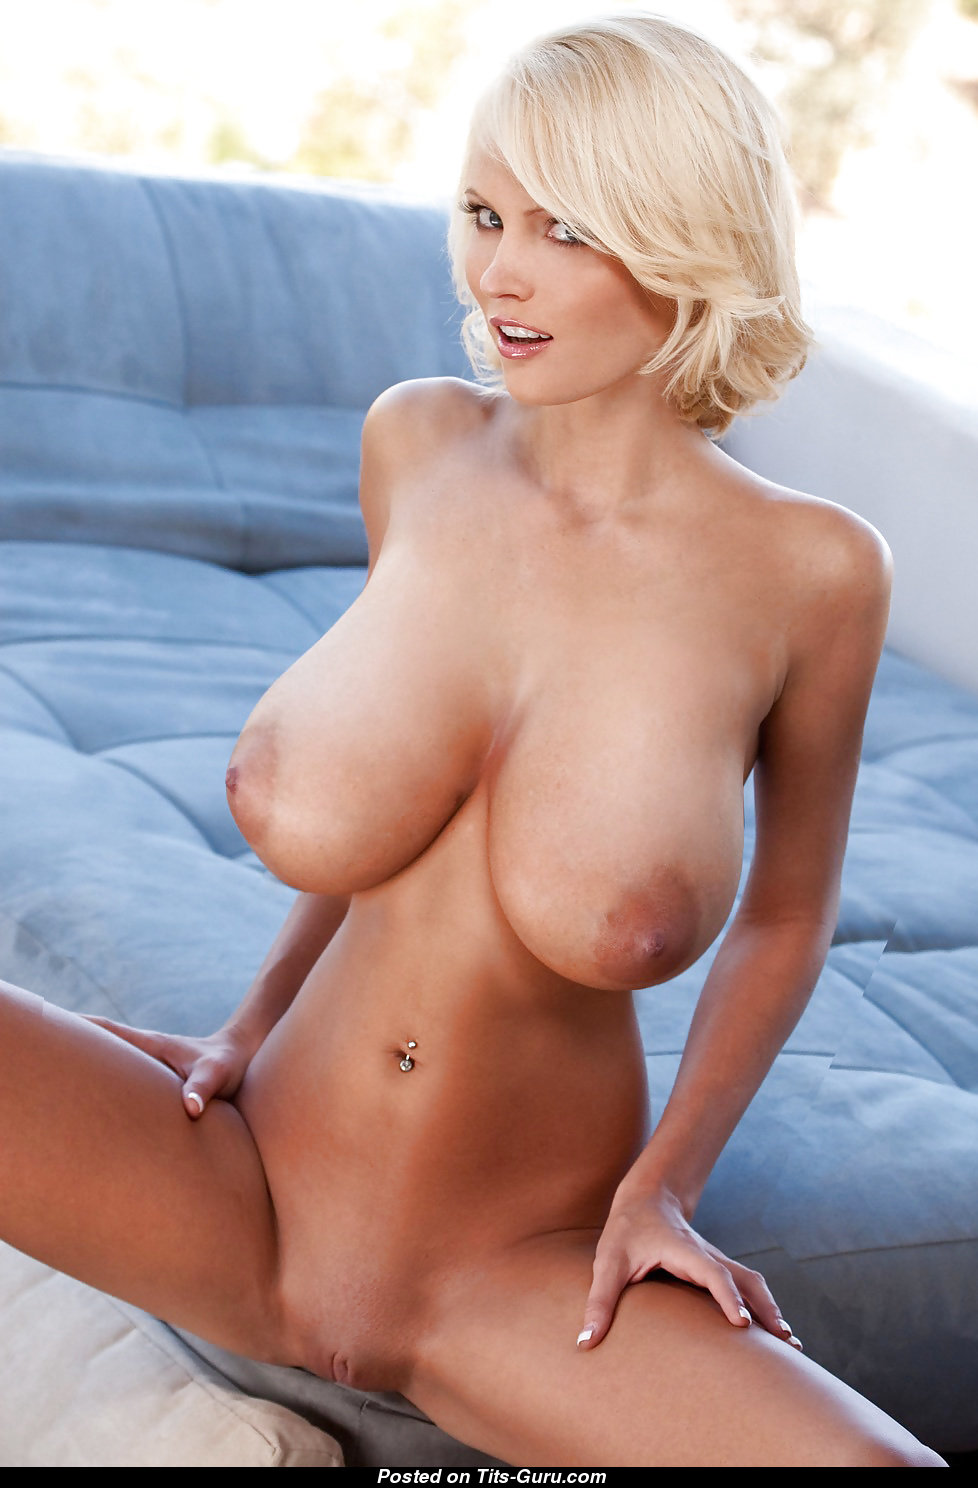 Busty short naked women — photo 3